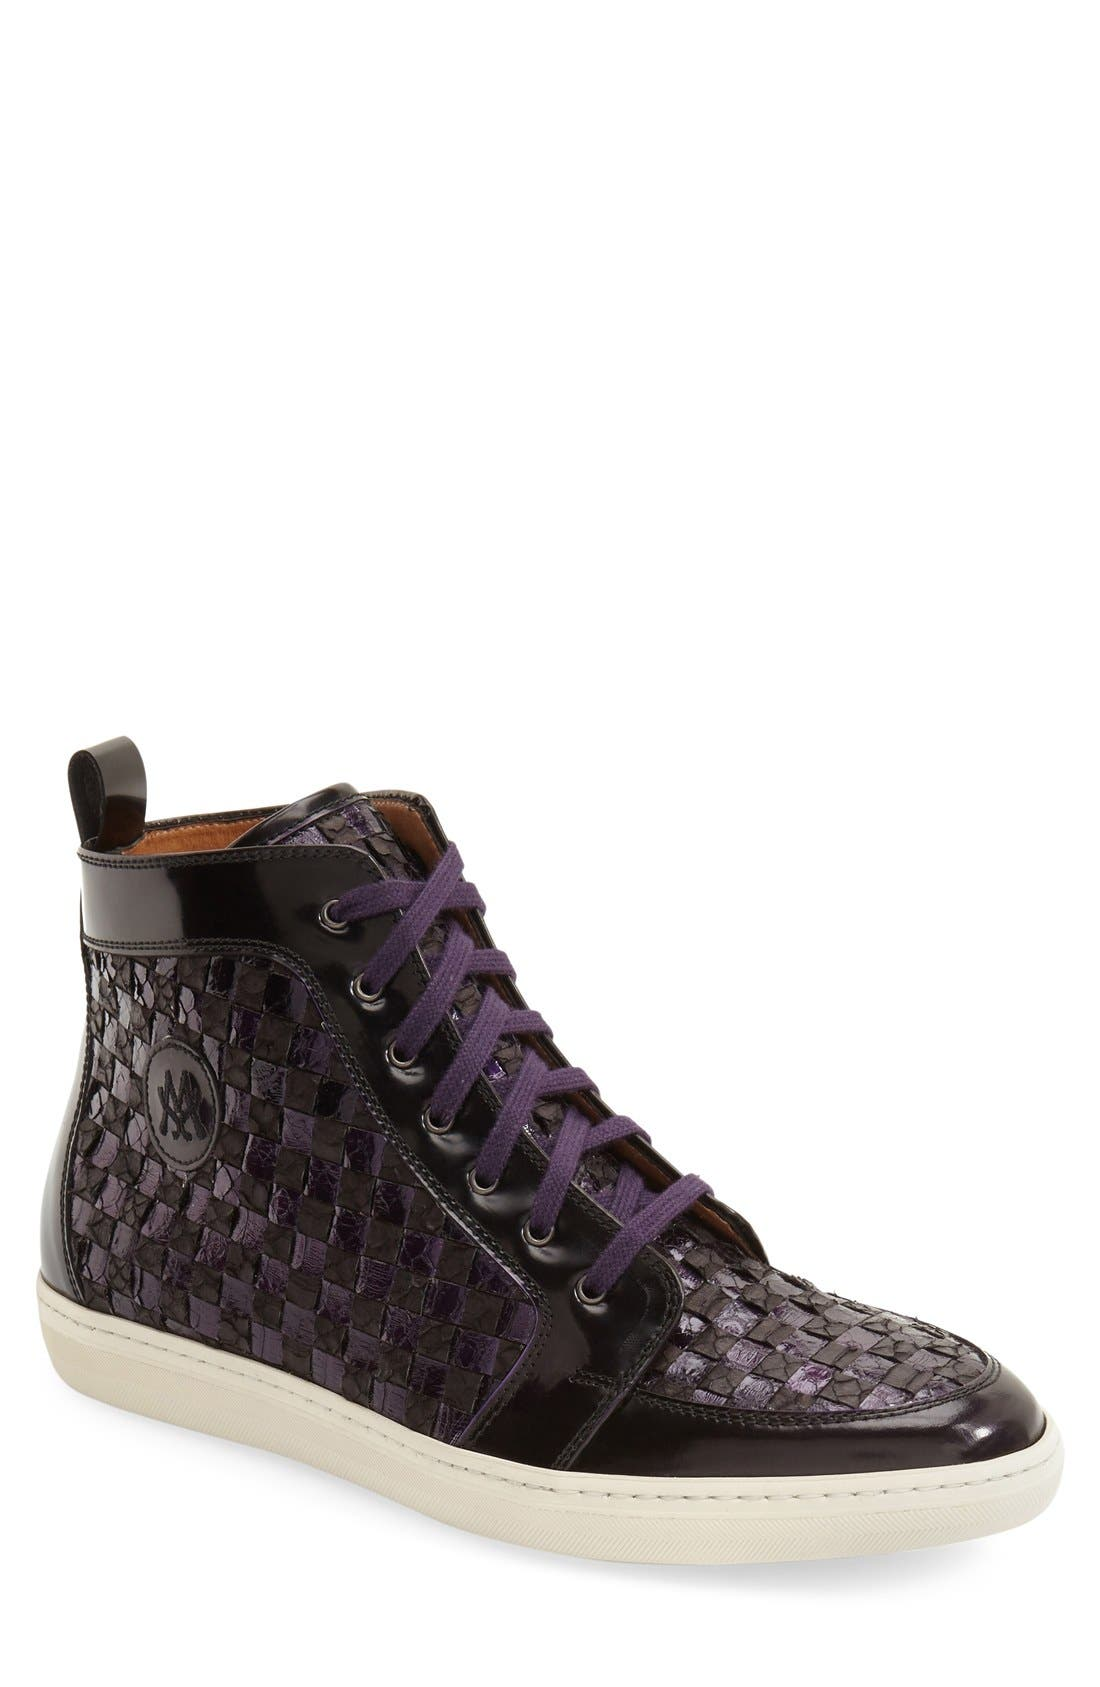 'Colonia' High Top Sneaker,                         Main,                         color, 248